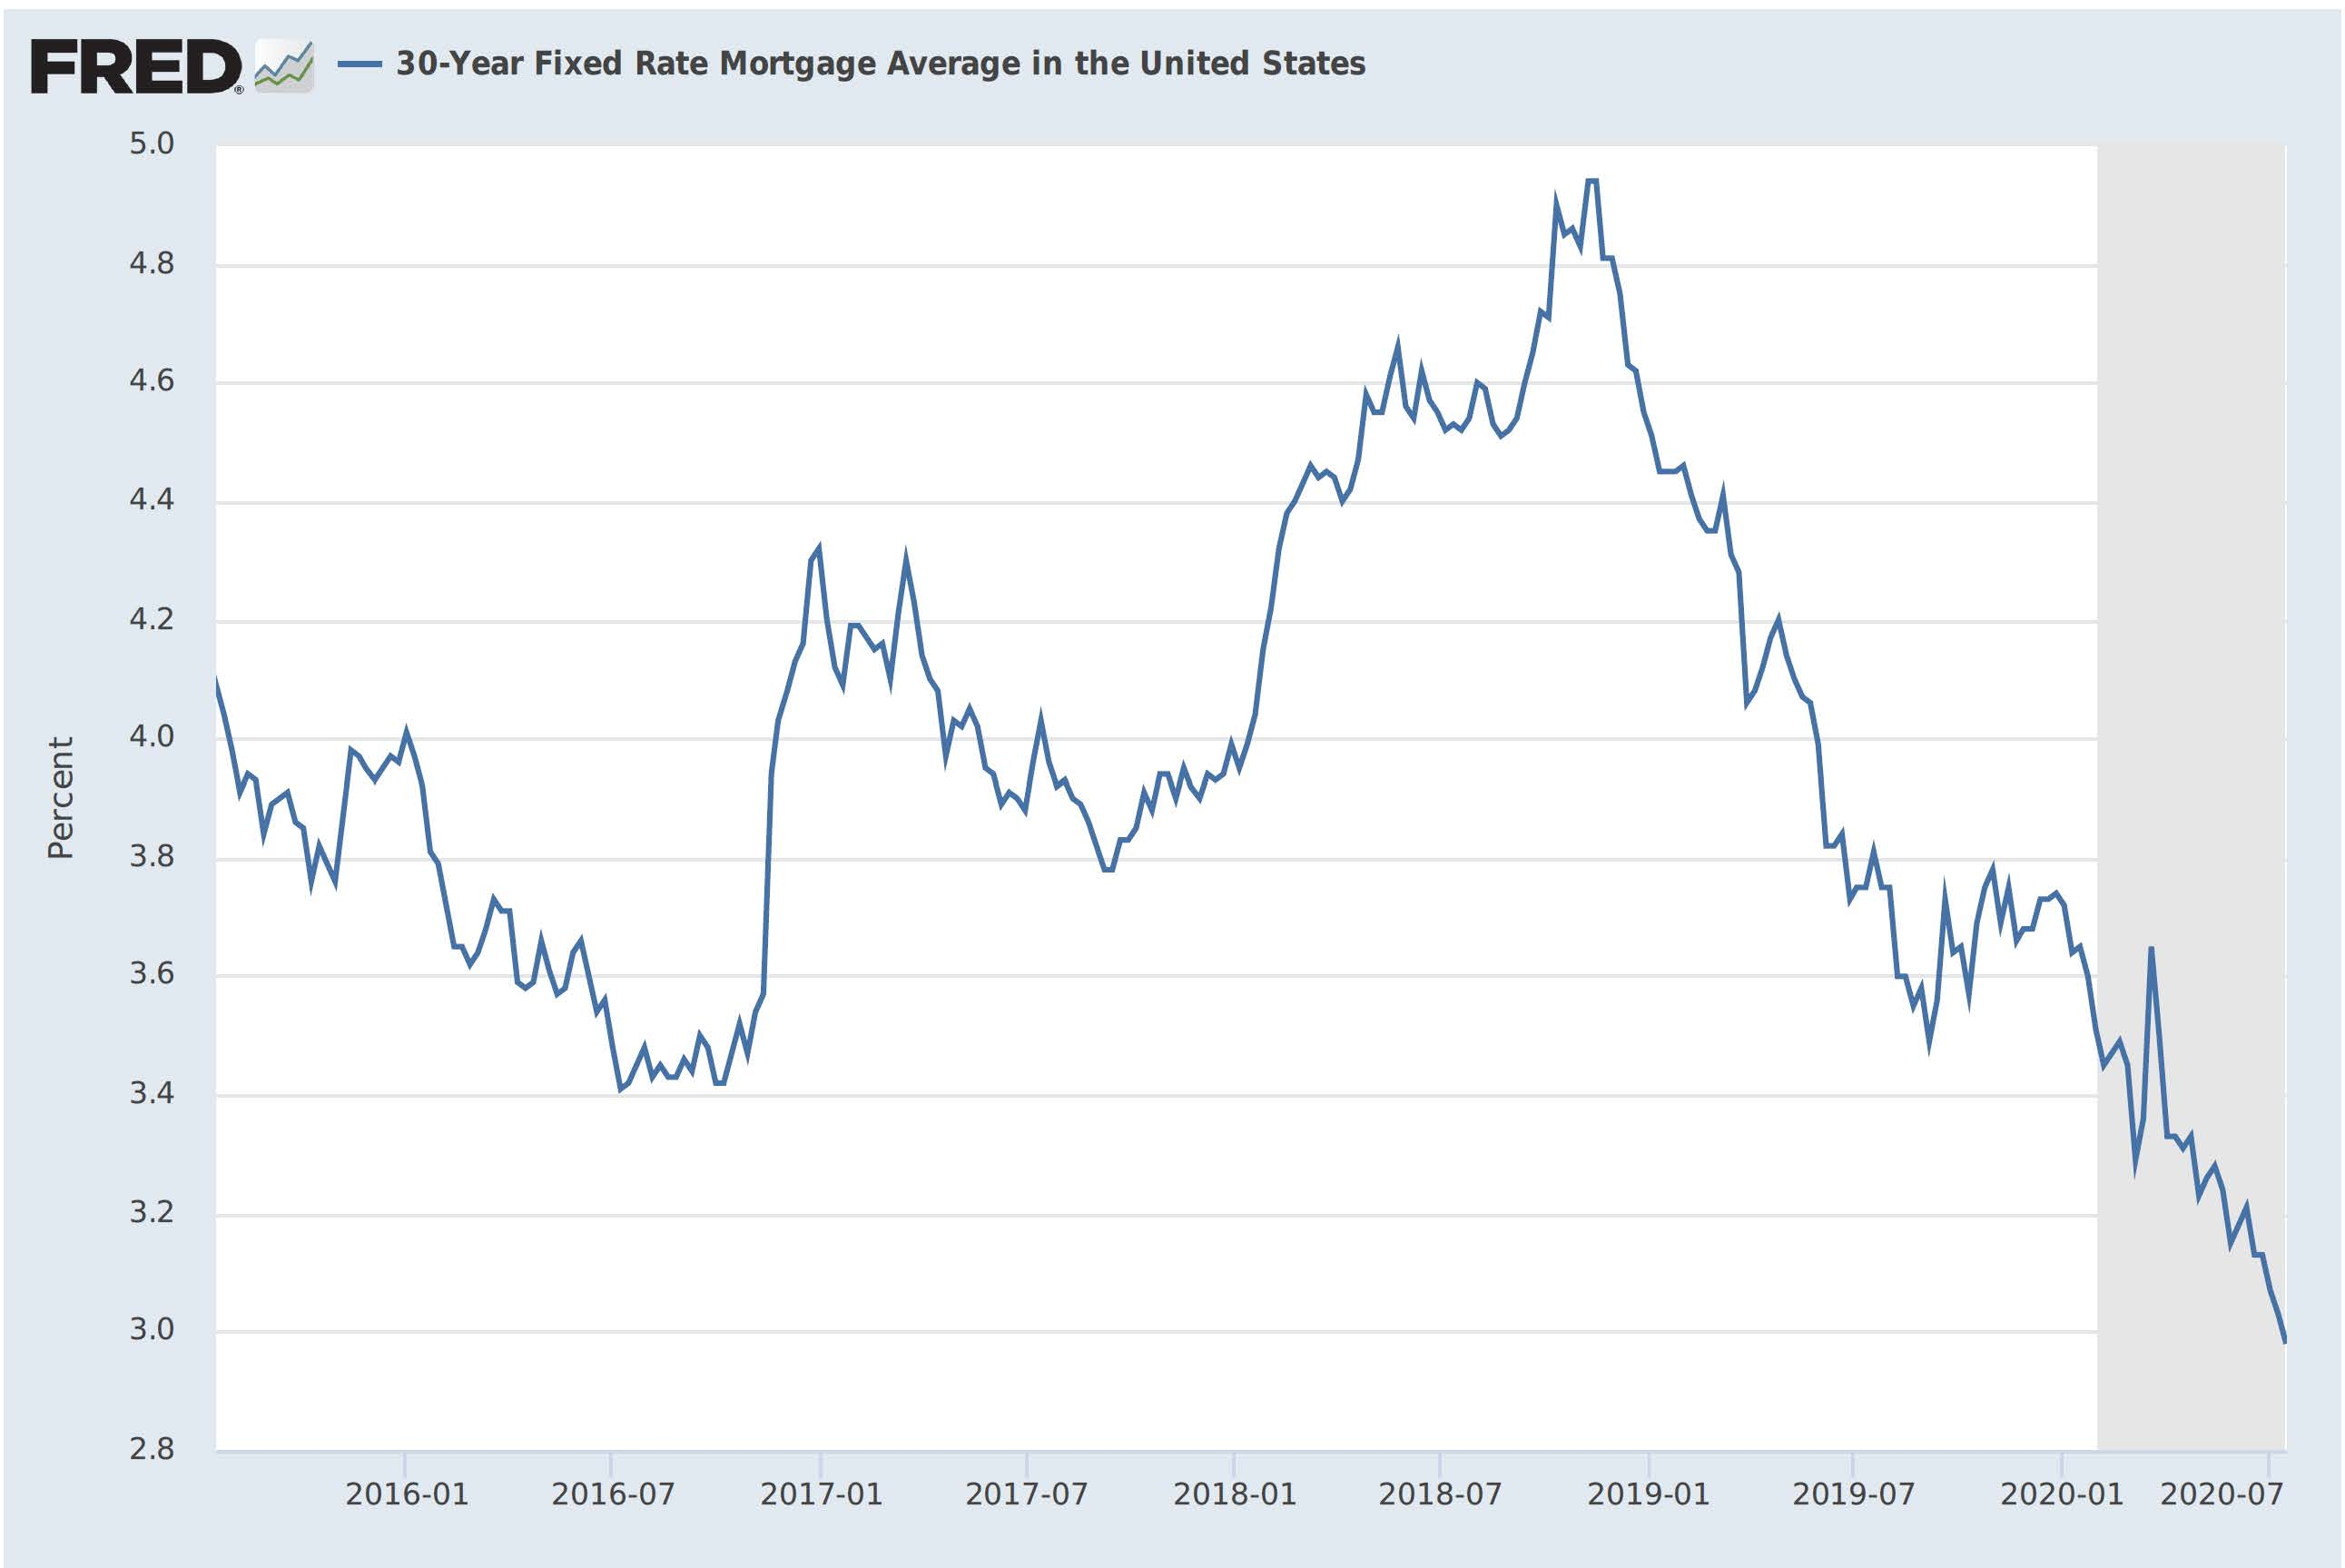 7-17-20 Fixerd 30 year mortgage rate average